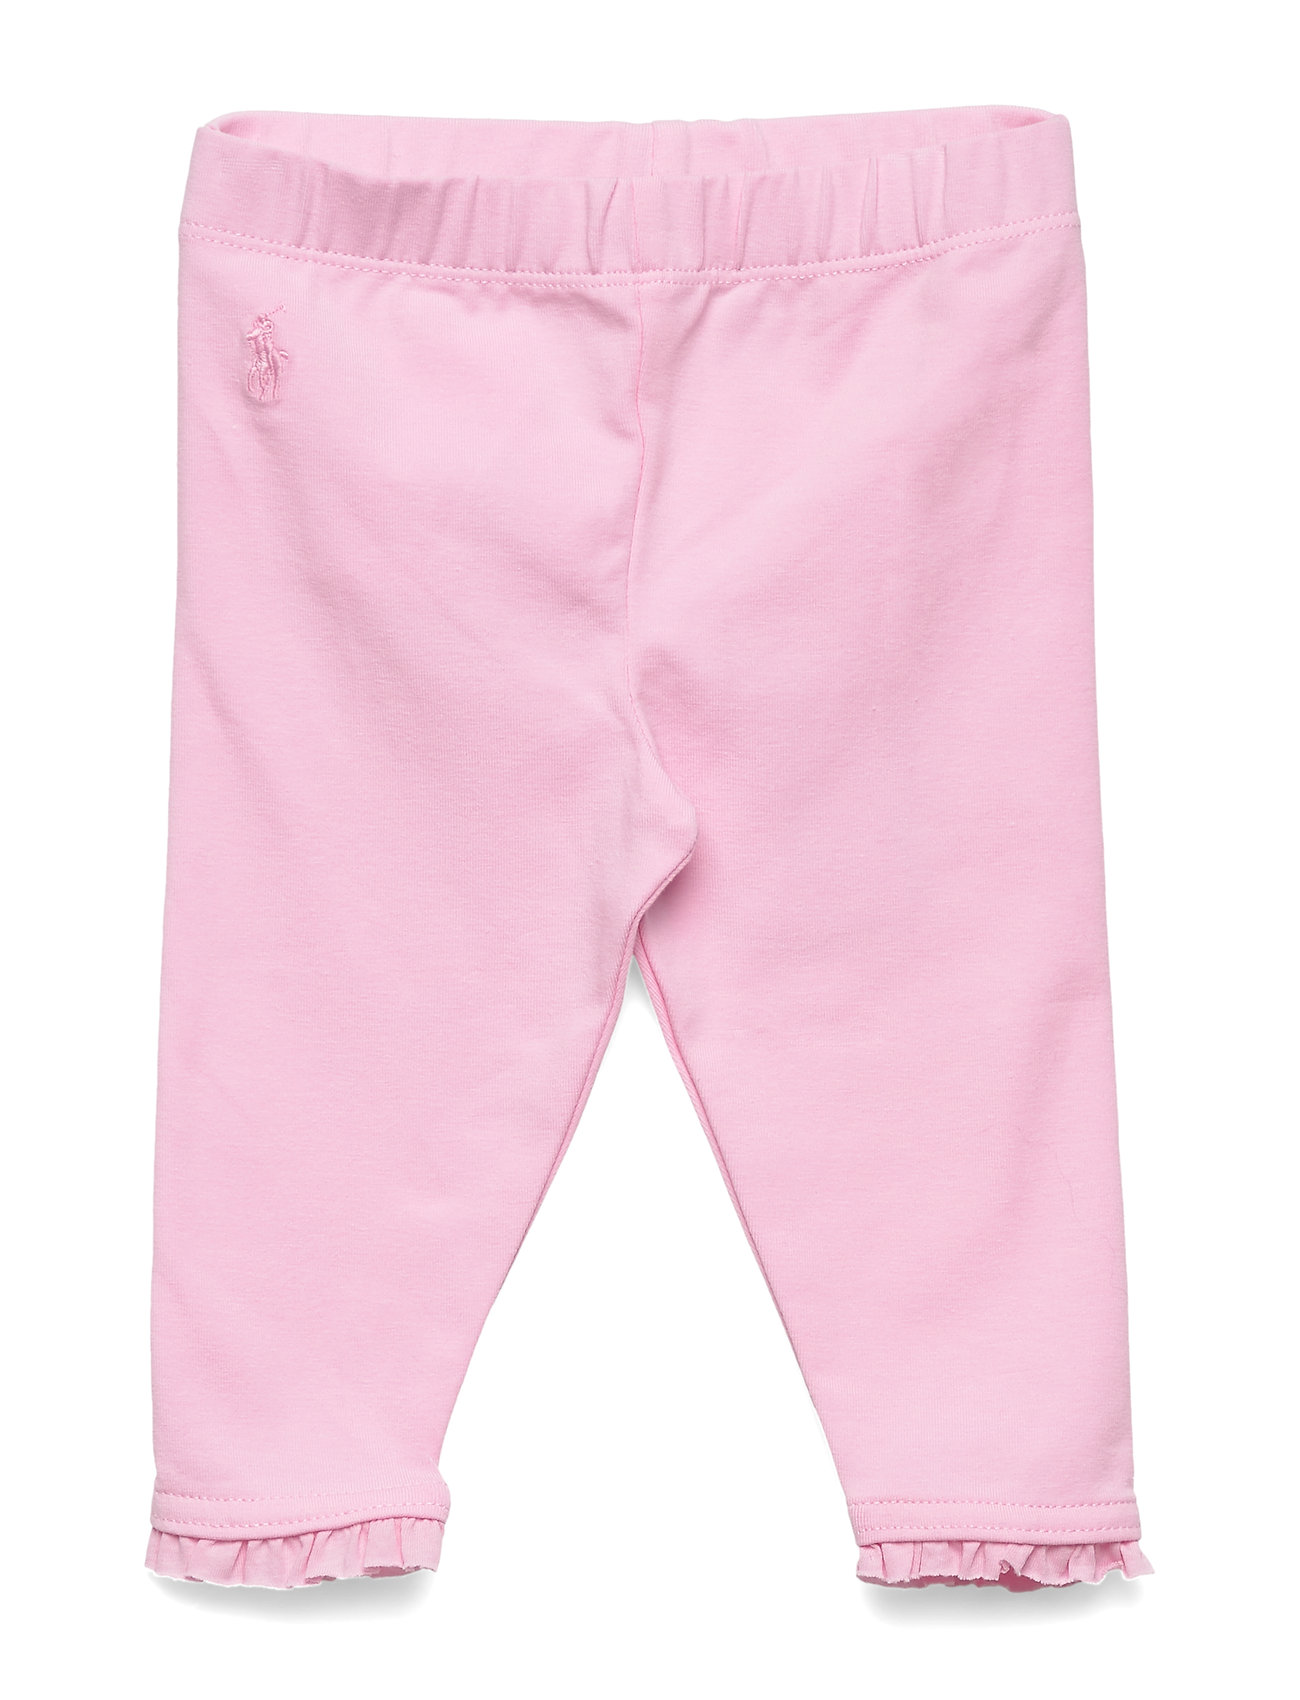 Ralph Lauren Baby Ruffled Stretch Cotton Legging - CARMEL PINK